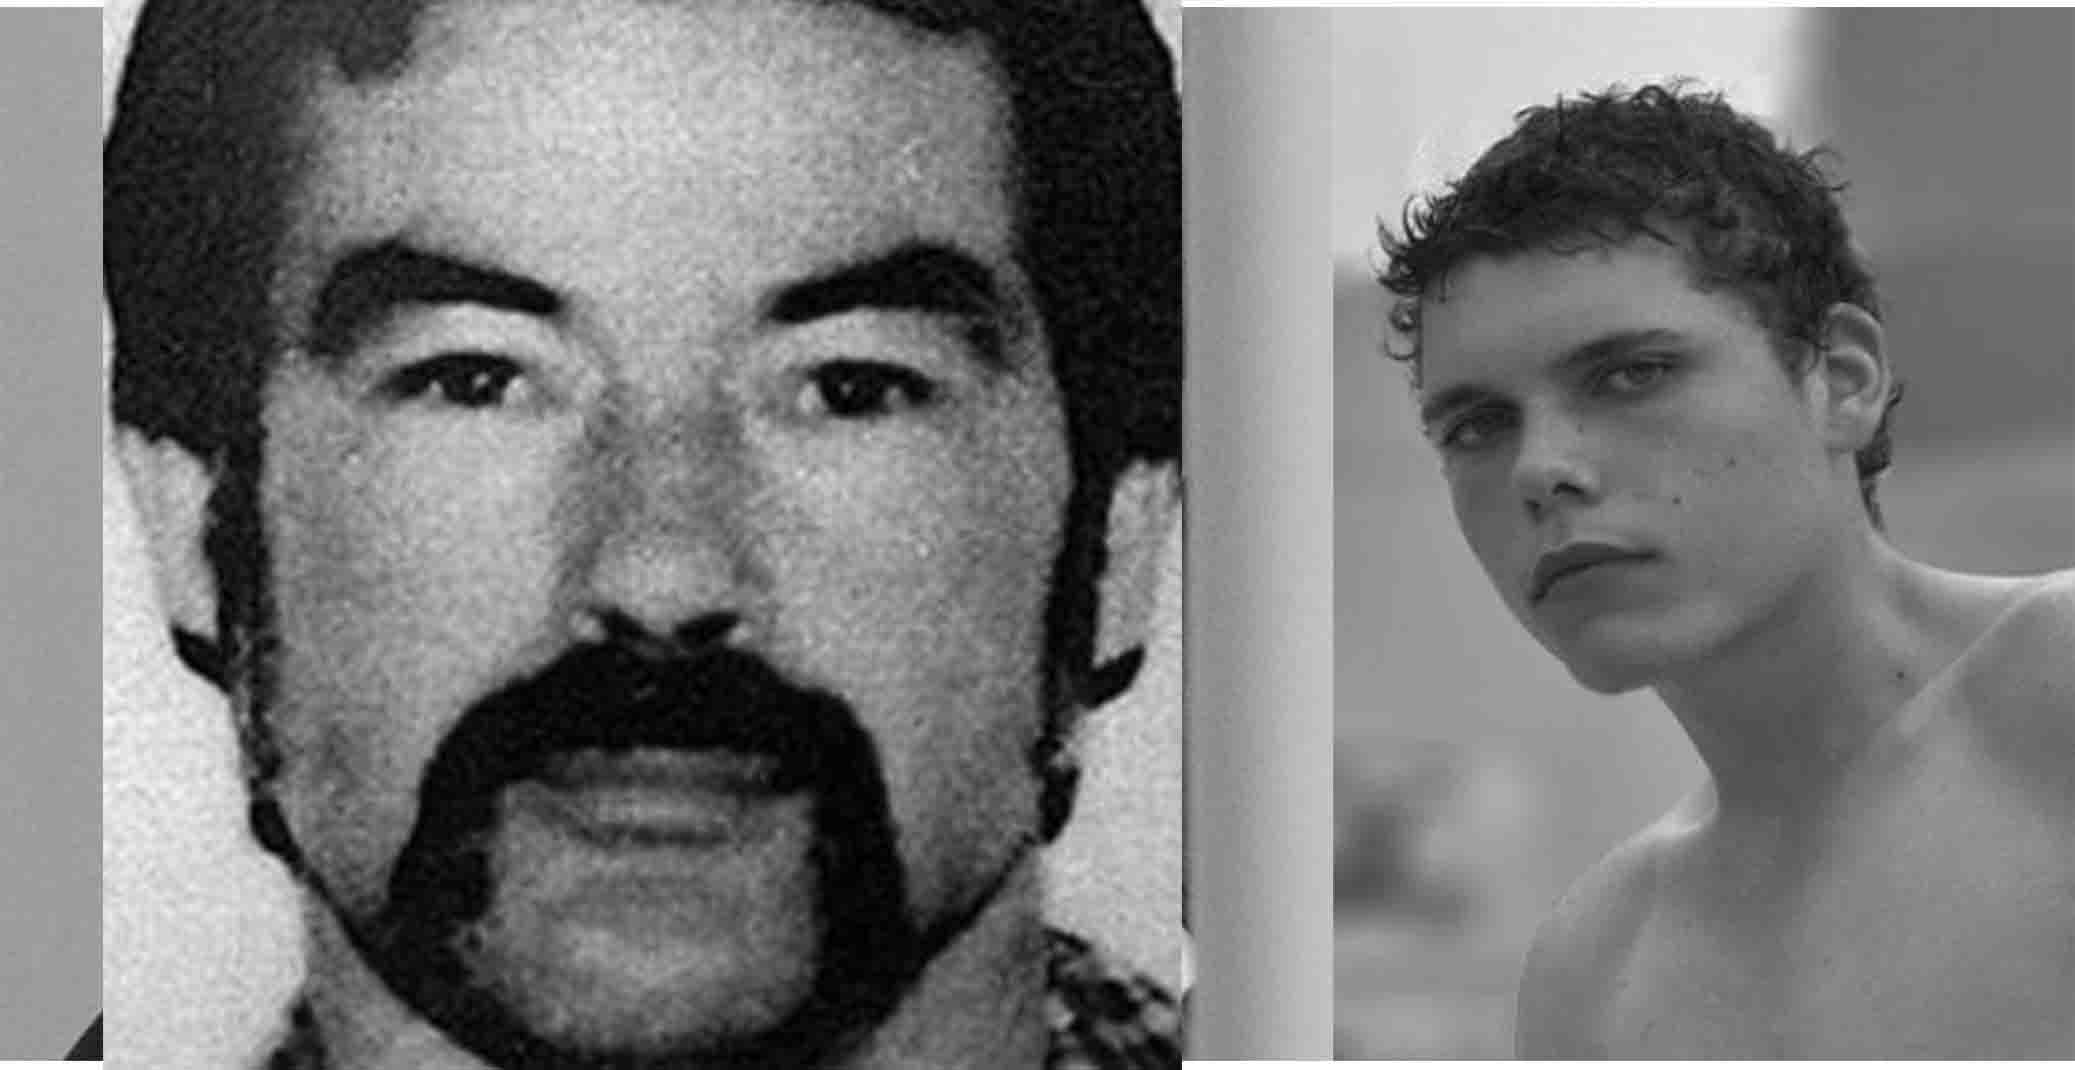 AUSTRALIA:LA STORIA DI SERIAL KILLER CHE HANNO UCCISO BACKPACKER FACENDO L'AUTOSTOP